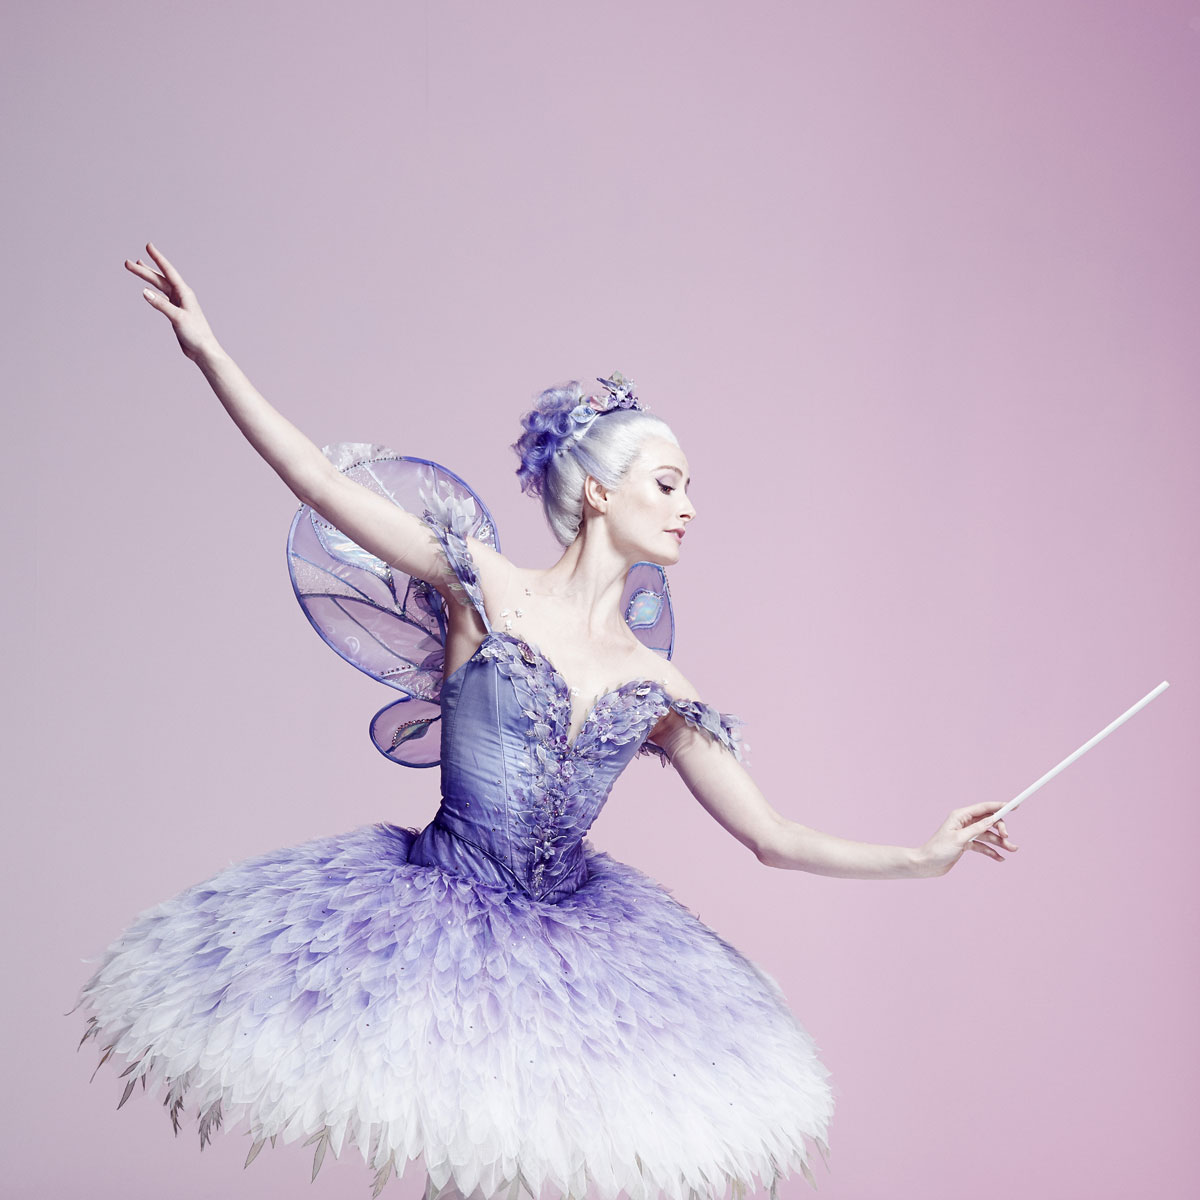 Poster: The Lilac Fairy - $20 or $30